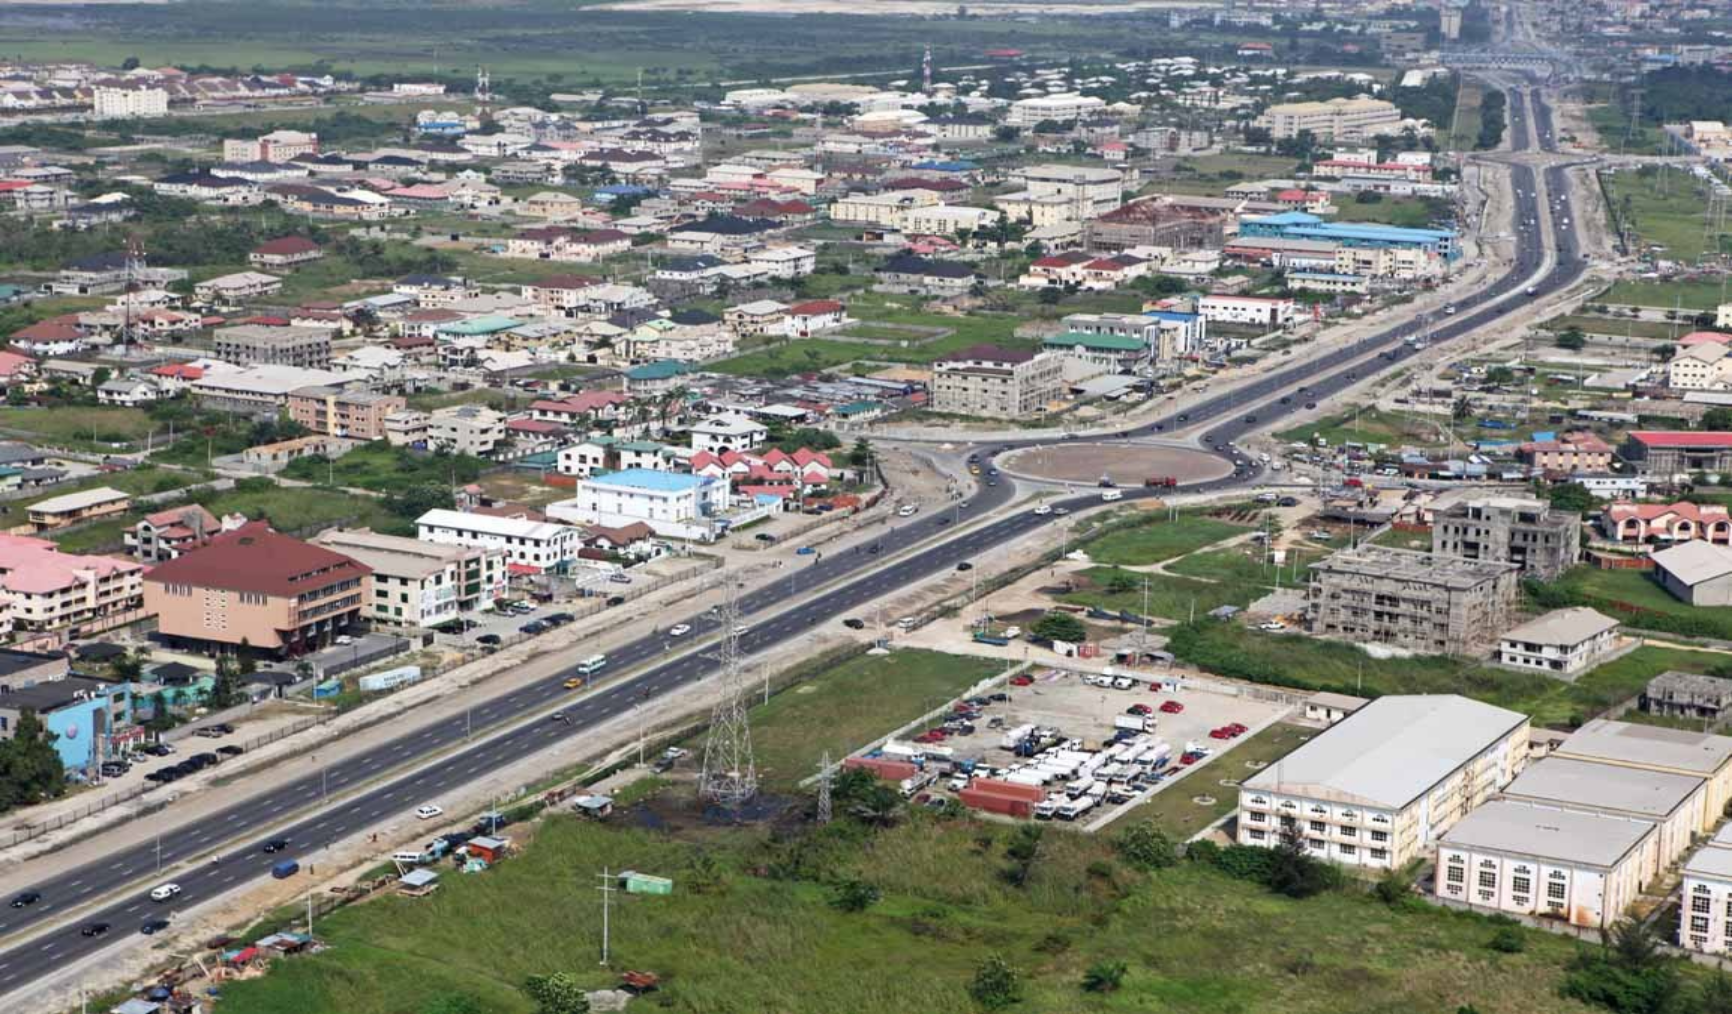 How Lekki rent is driving people to settlements